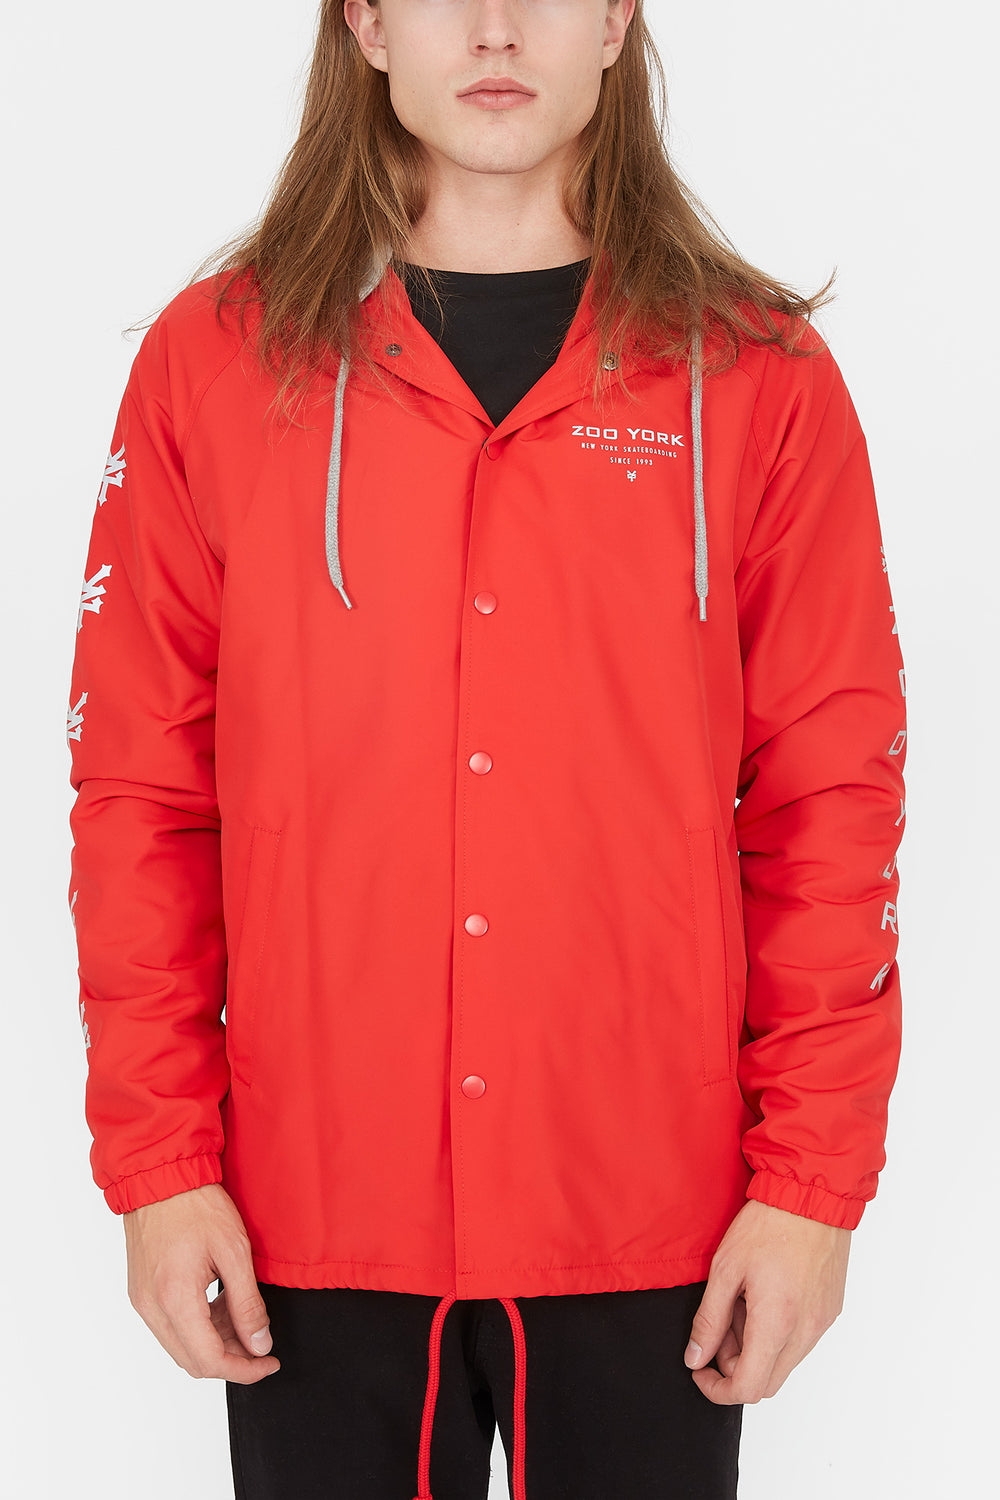 Zoo York Mens Reflective Print Coach Jacket Red